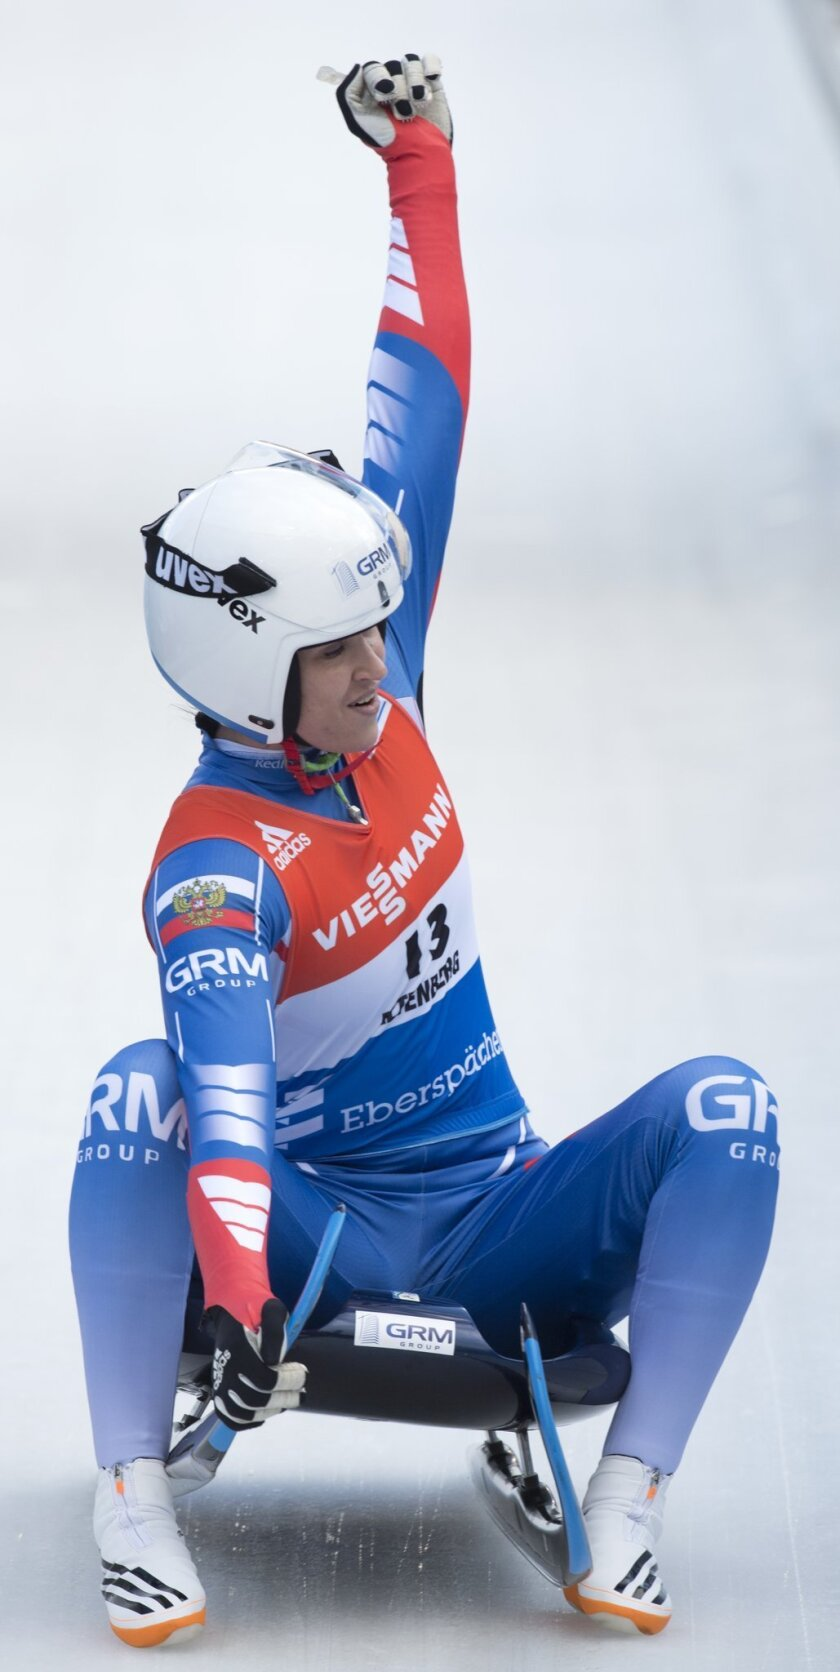 Tatiana Ivanova of Russia celebrates her third place  after the women's  World Cup  luge race in Altenberg, eastern Germany, Sunday, Feb. 14, 2016. (AP Photo/Jens Meyer)